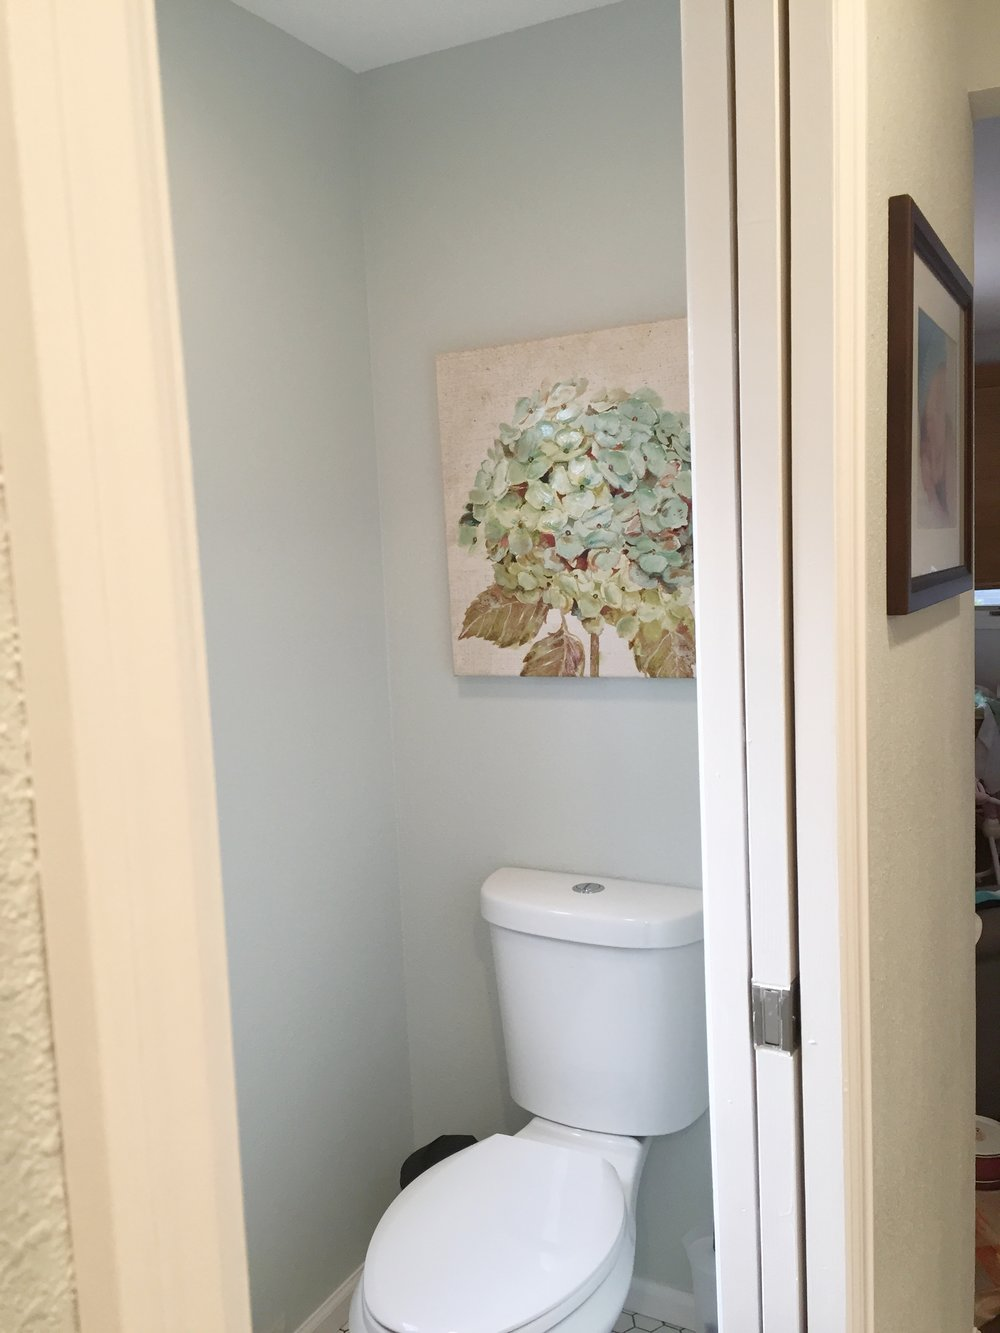 Private toilet room.